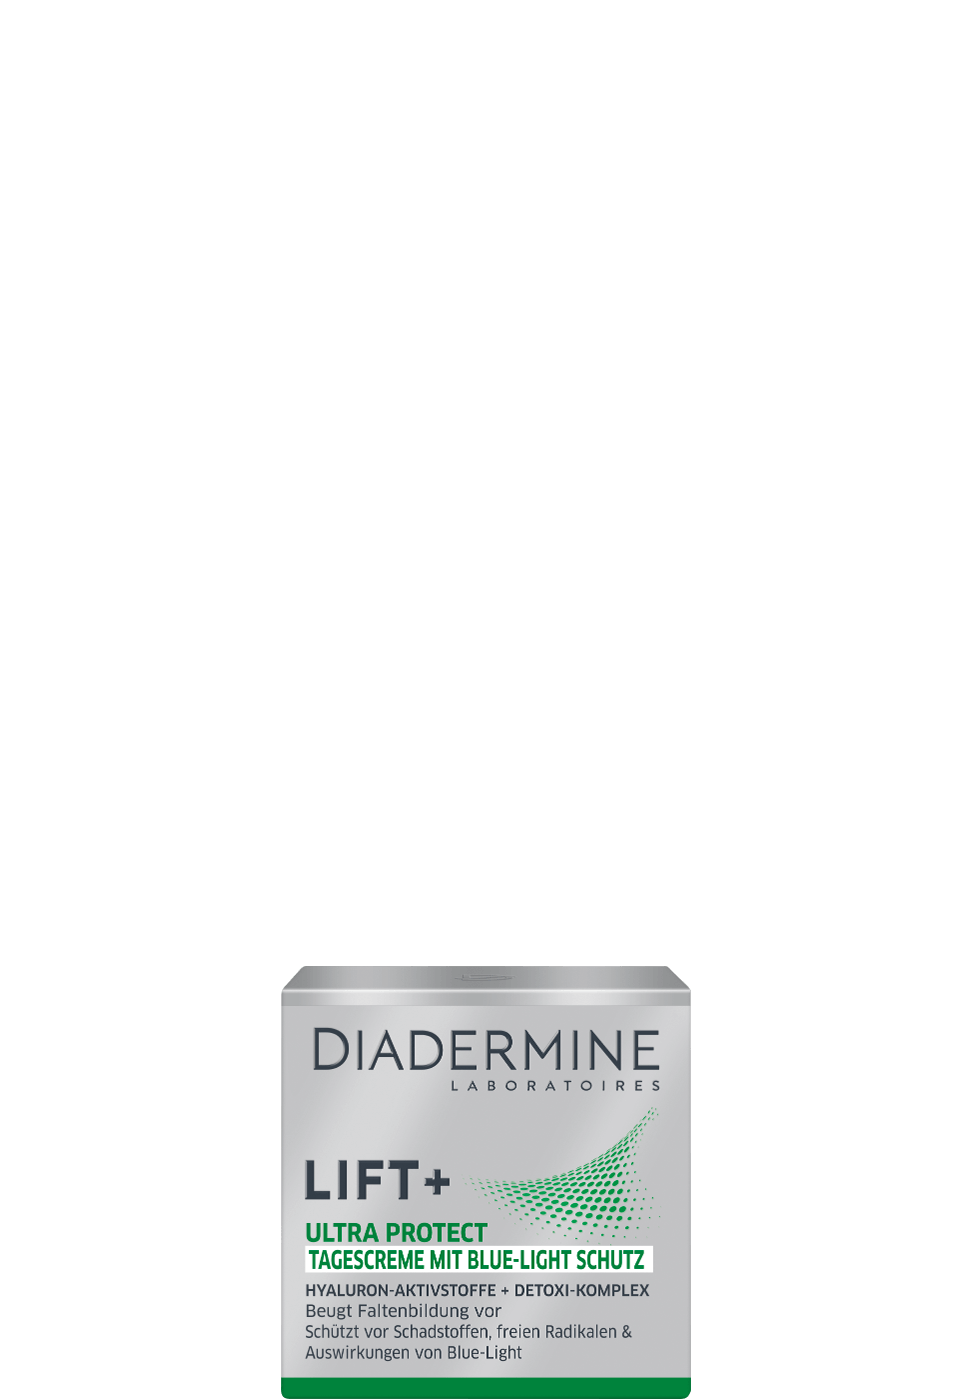 diadermine_de_lift_plus_ultra_protect_tagescreme_970x1400